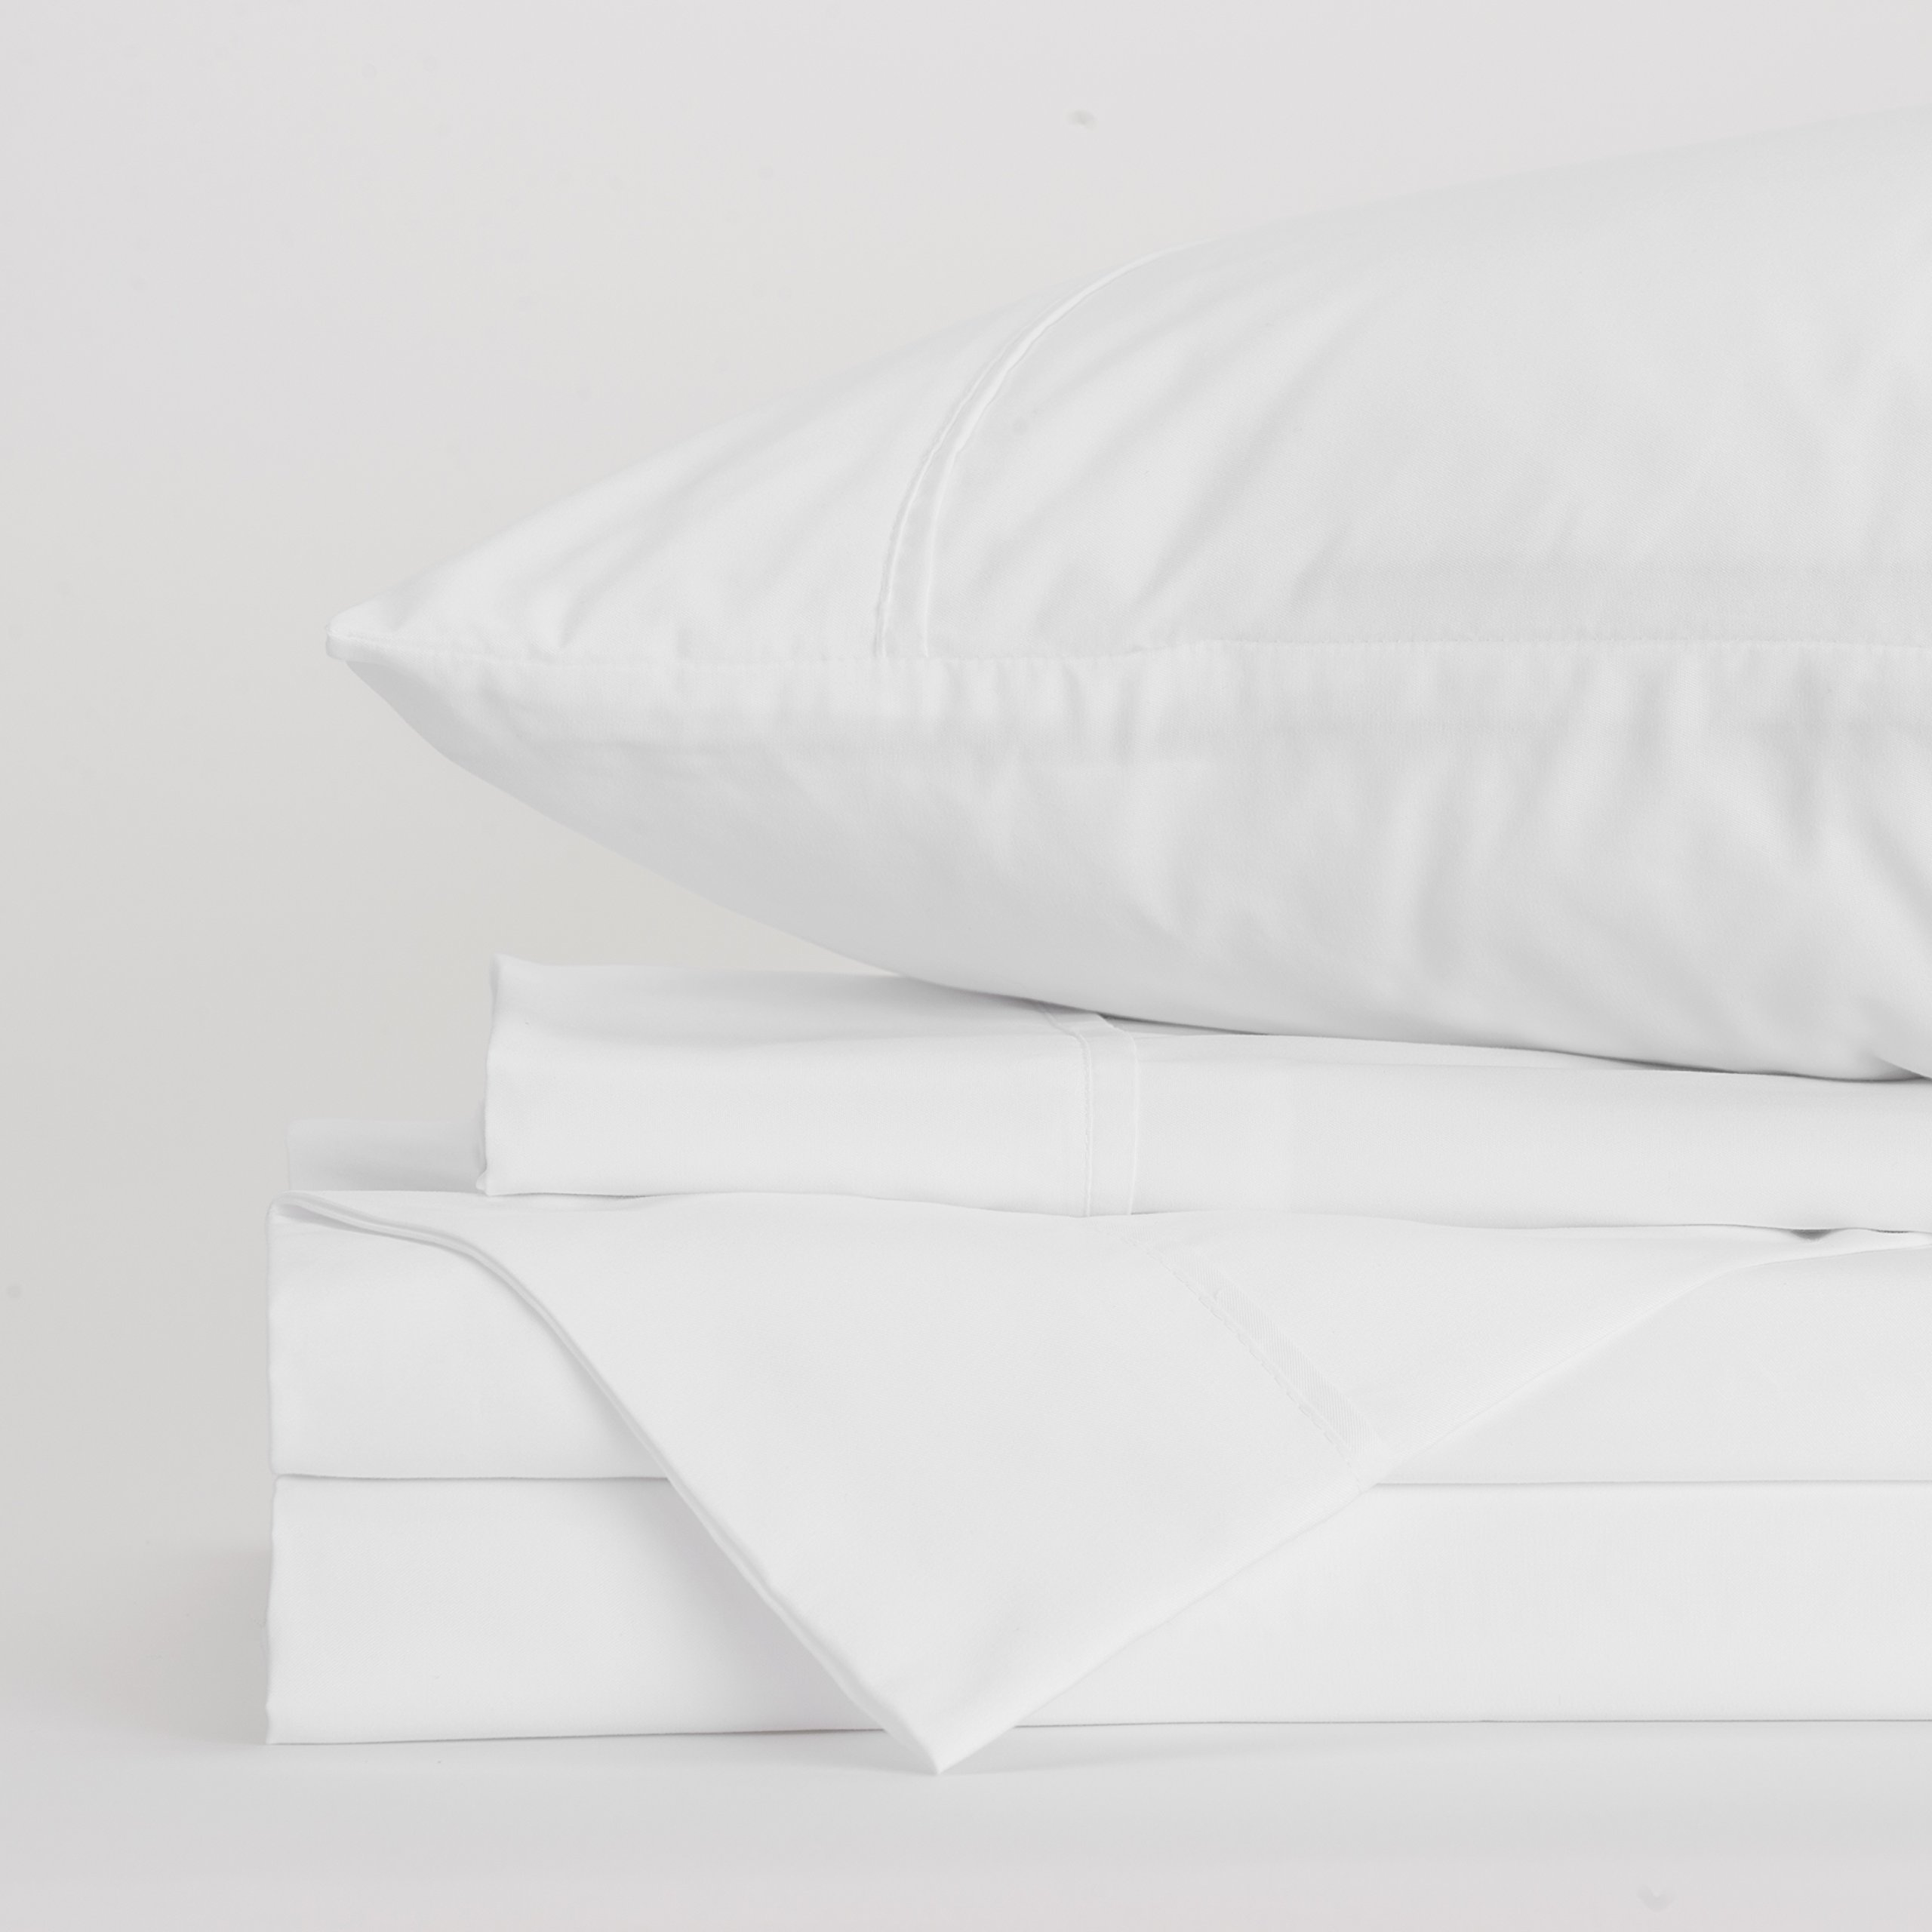 Jennifer Adams Home Lux Collection Sheet Set, 4-Piece Luxury Bed Sheets, Hypoallergenic and Wrinkle Free, Includes 1 Fitted Sheet, 1 Flat Sheet, and 2 Pillowcases (King, White) by Jennifer Adams